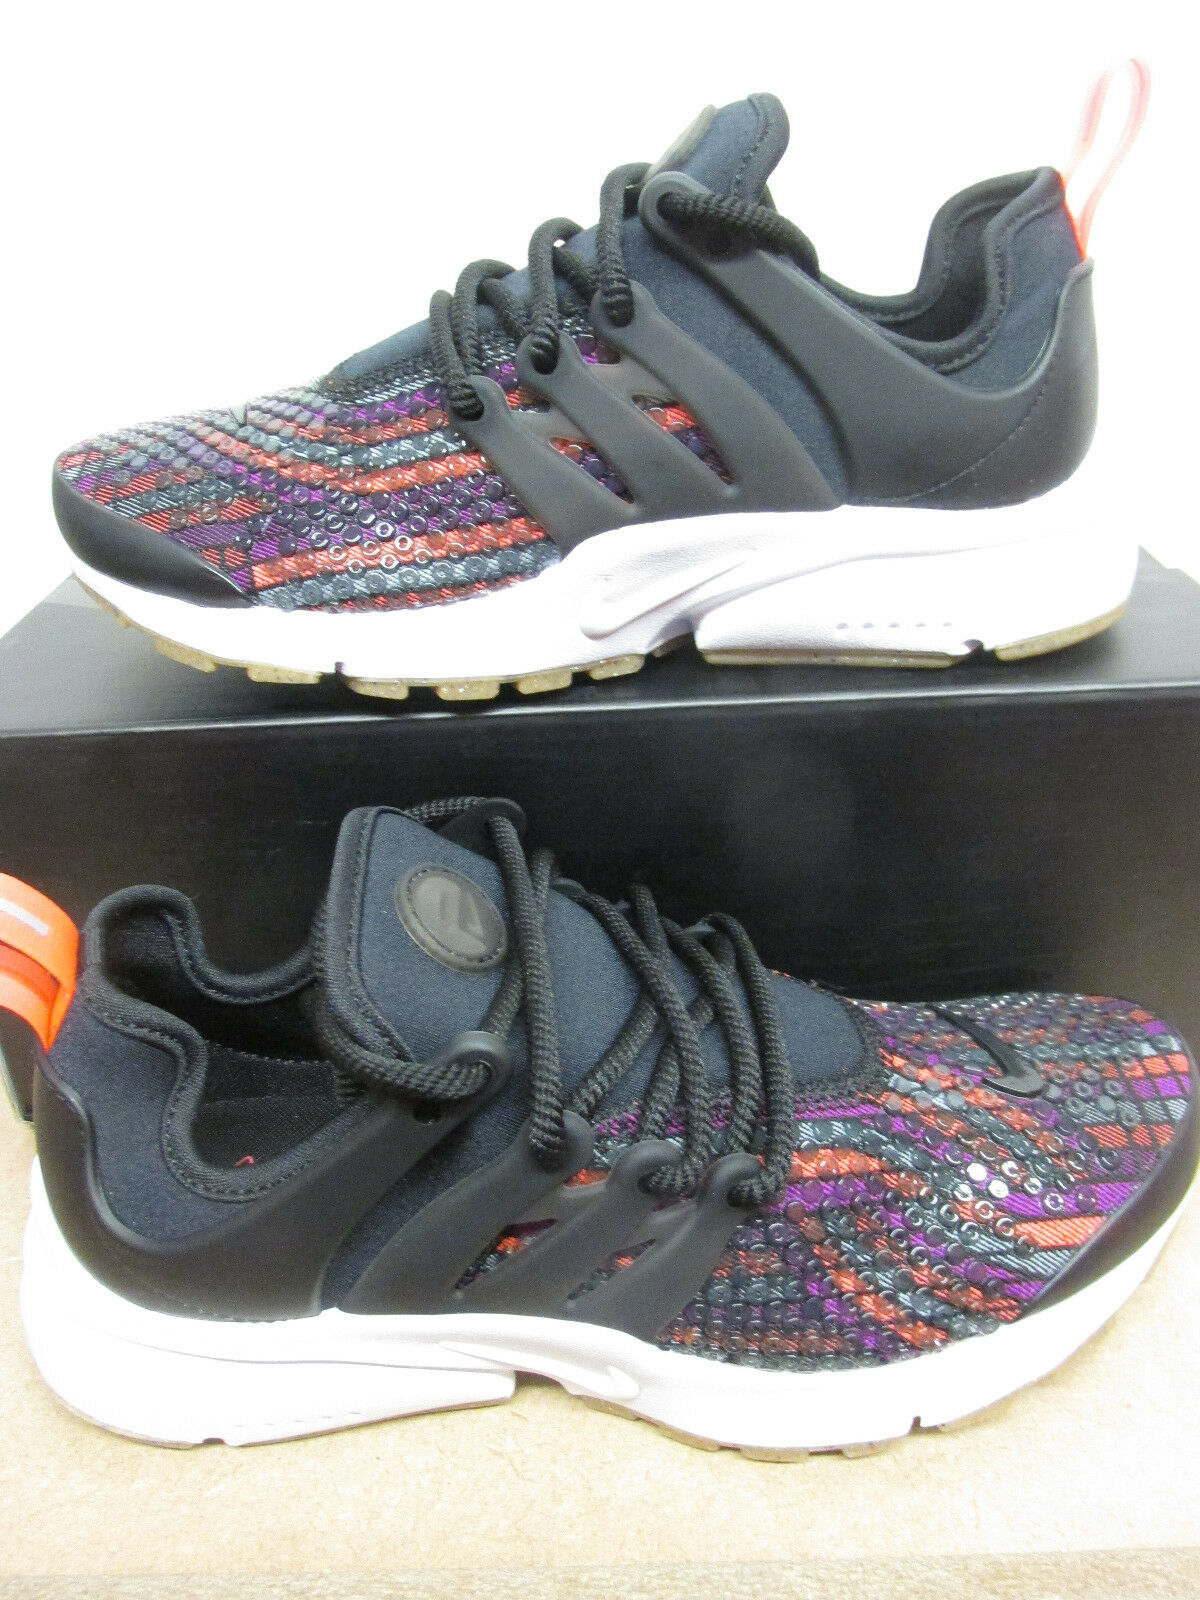 Nike Womens Air Presto JCRD PRM Running Trainers 885020 001 Sneakers Shoes